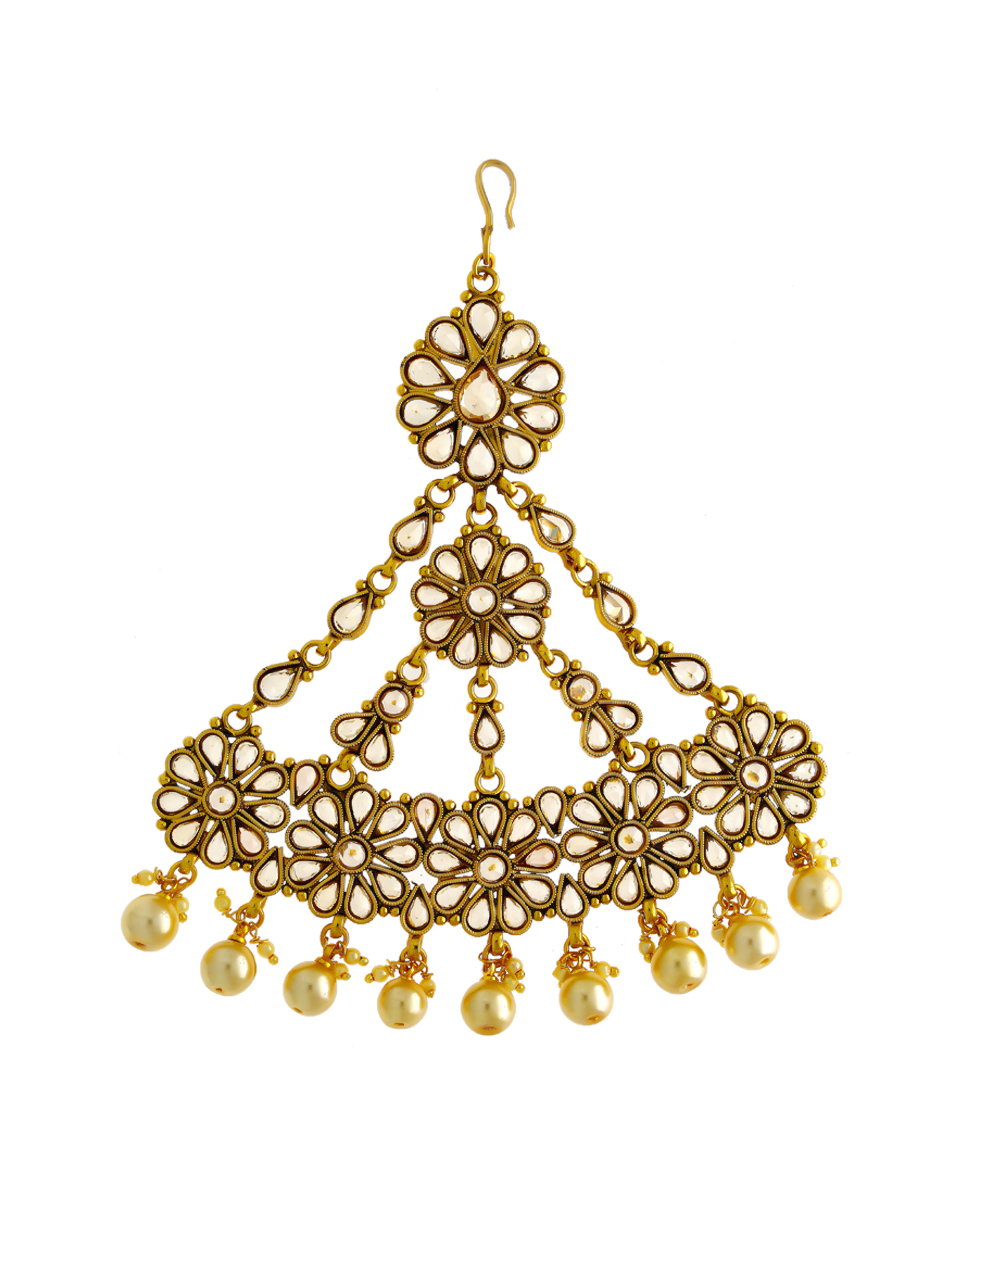 Floral Design Gold Finish Studded With Stones Hair Passa